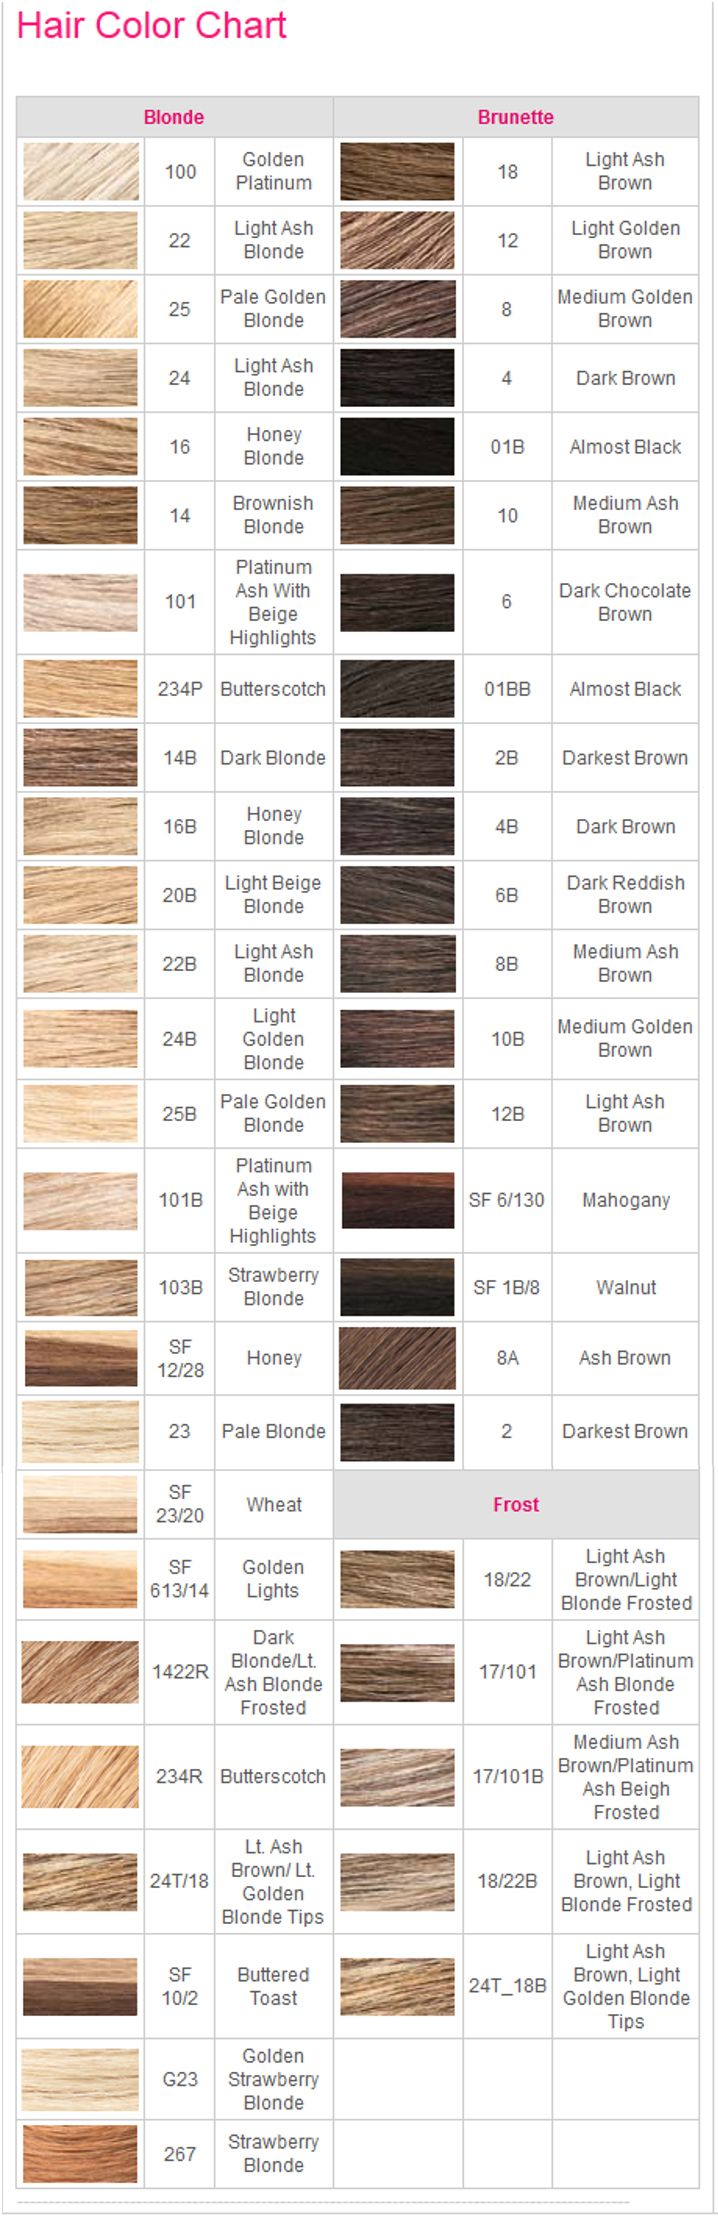 Hair color chart.......................................................................................................